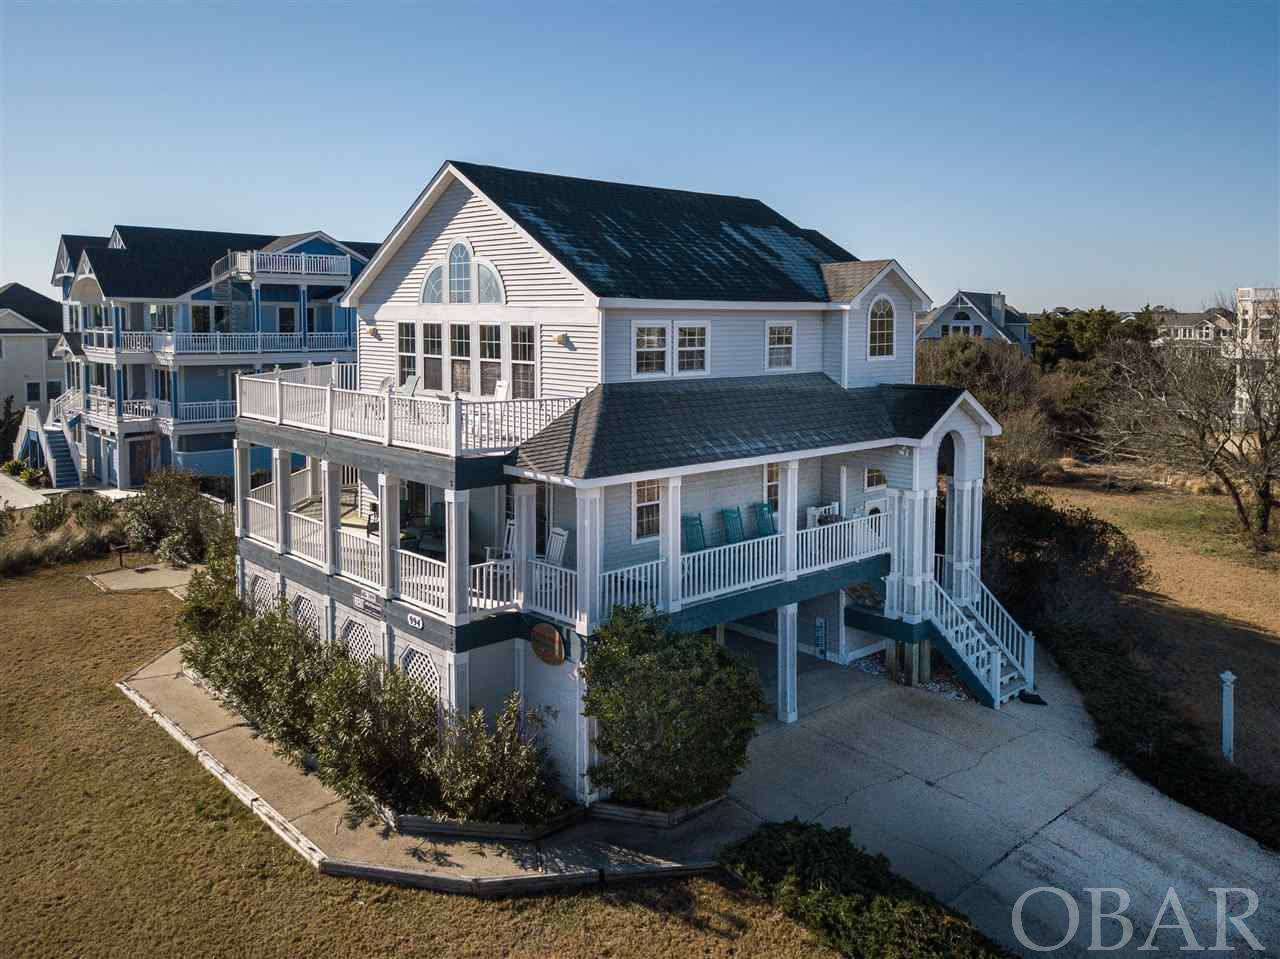 994 Whalehead Drive, Corolla, NC 27927, 6 Bedrooms Bedrooms, ,5 BathroomsBathrooms,Residential,For sale,Whalehead Drive,103475